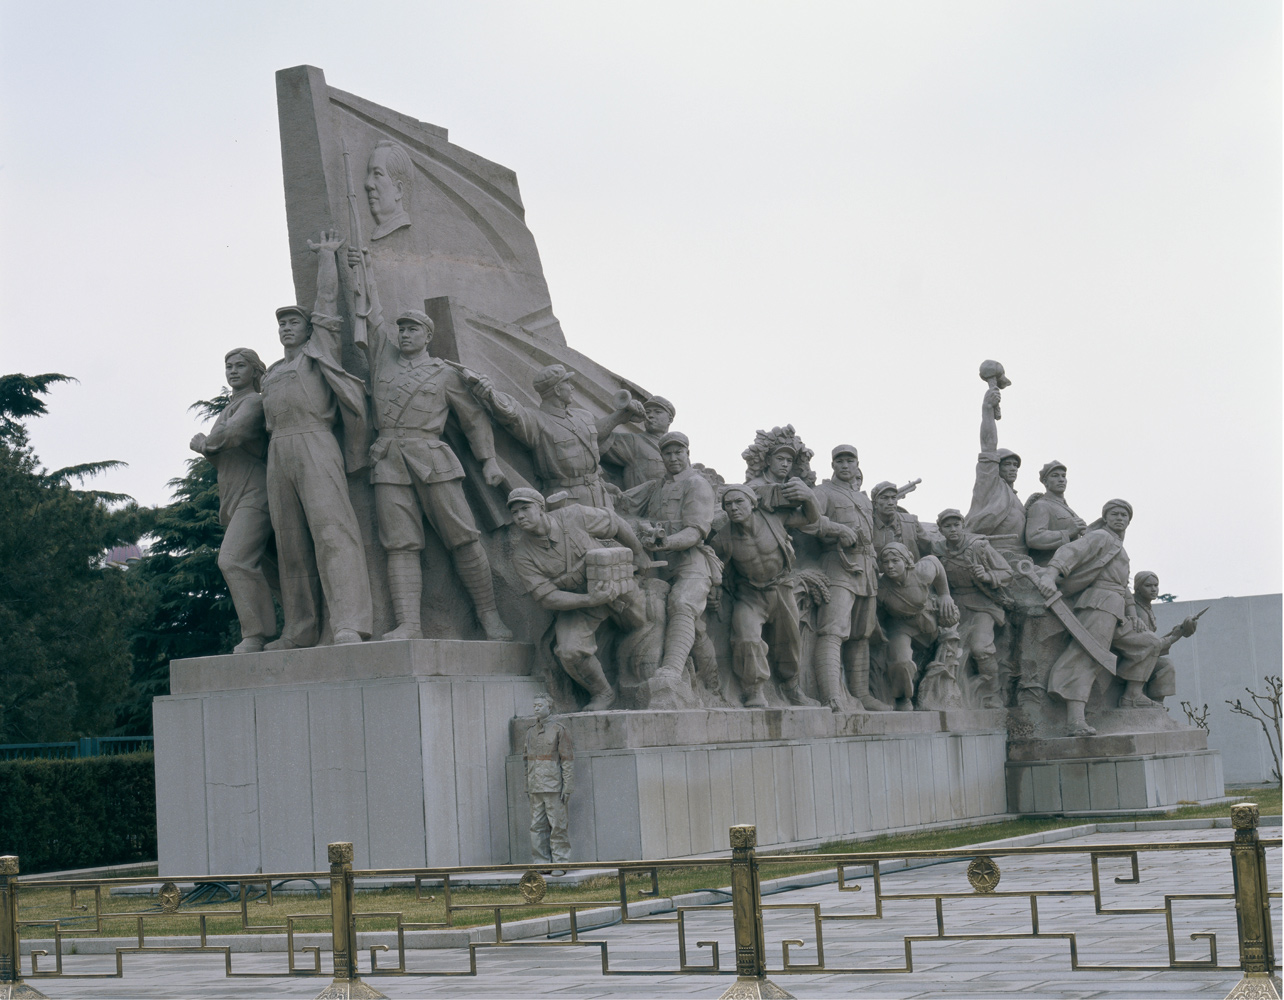 Hiding in the City No. 19—Sculptures on the Left of Chairman Mao, 2006